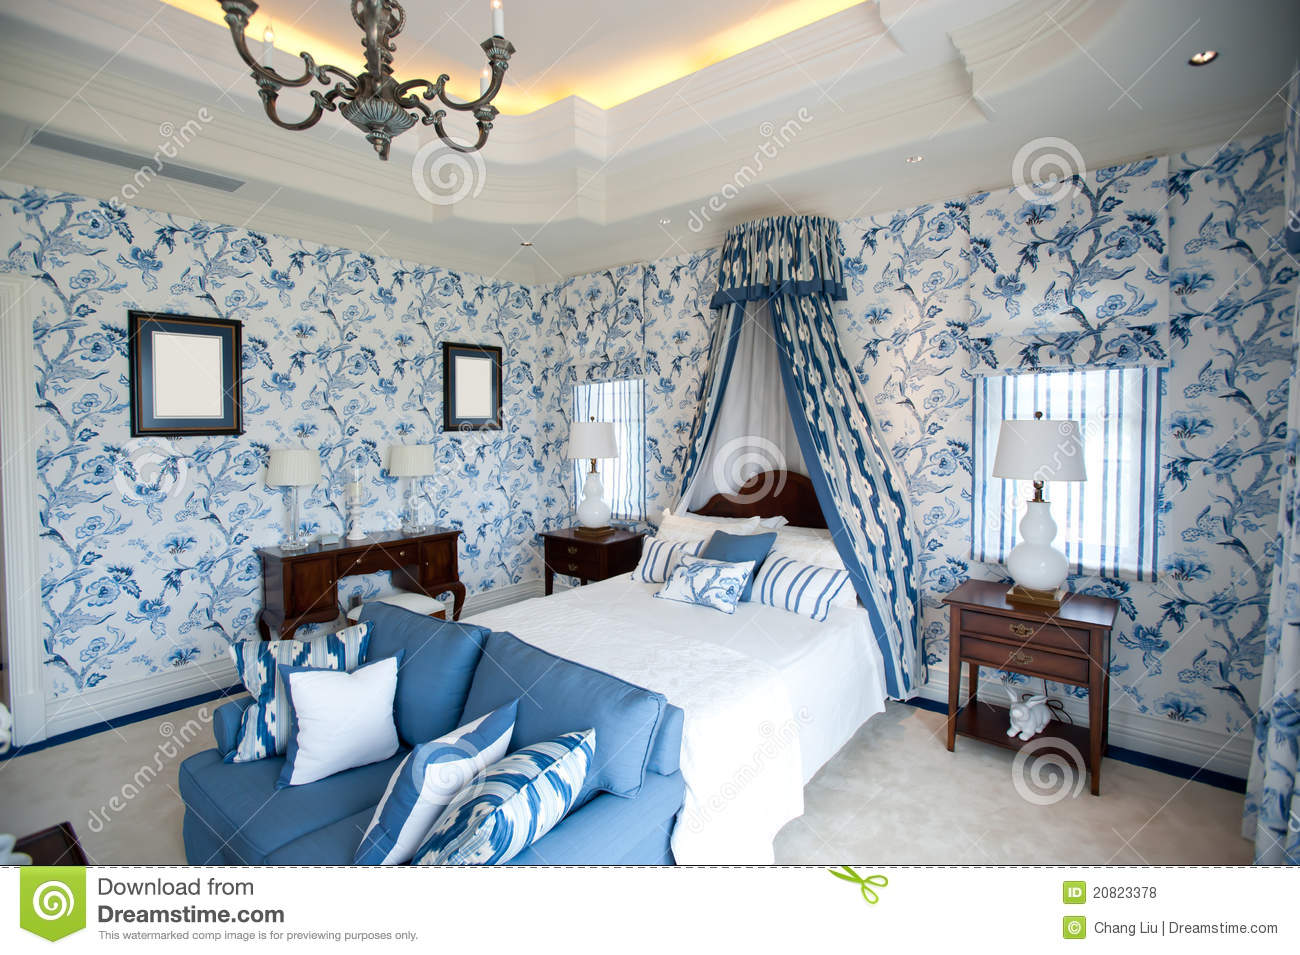 chambre coucher avec le papier peint bleu de fleur. Black Bedroom Furniture Sets. Home Design Ideas